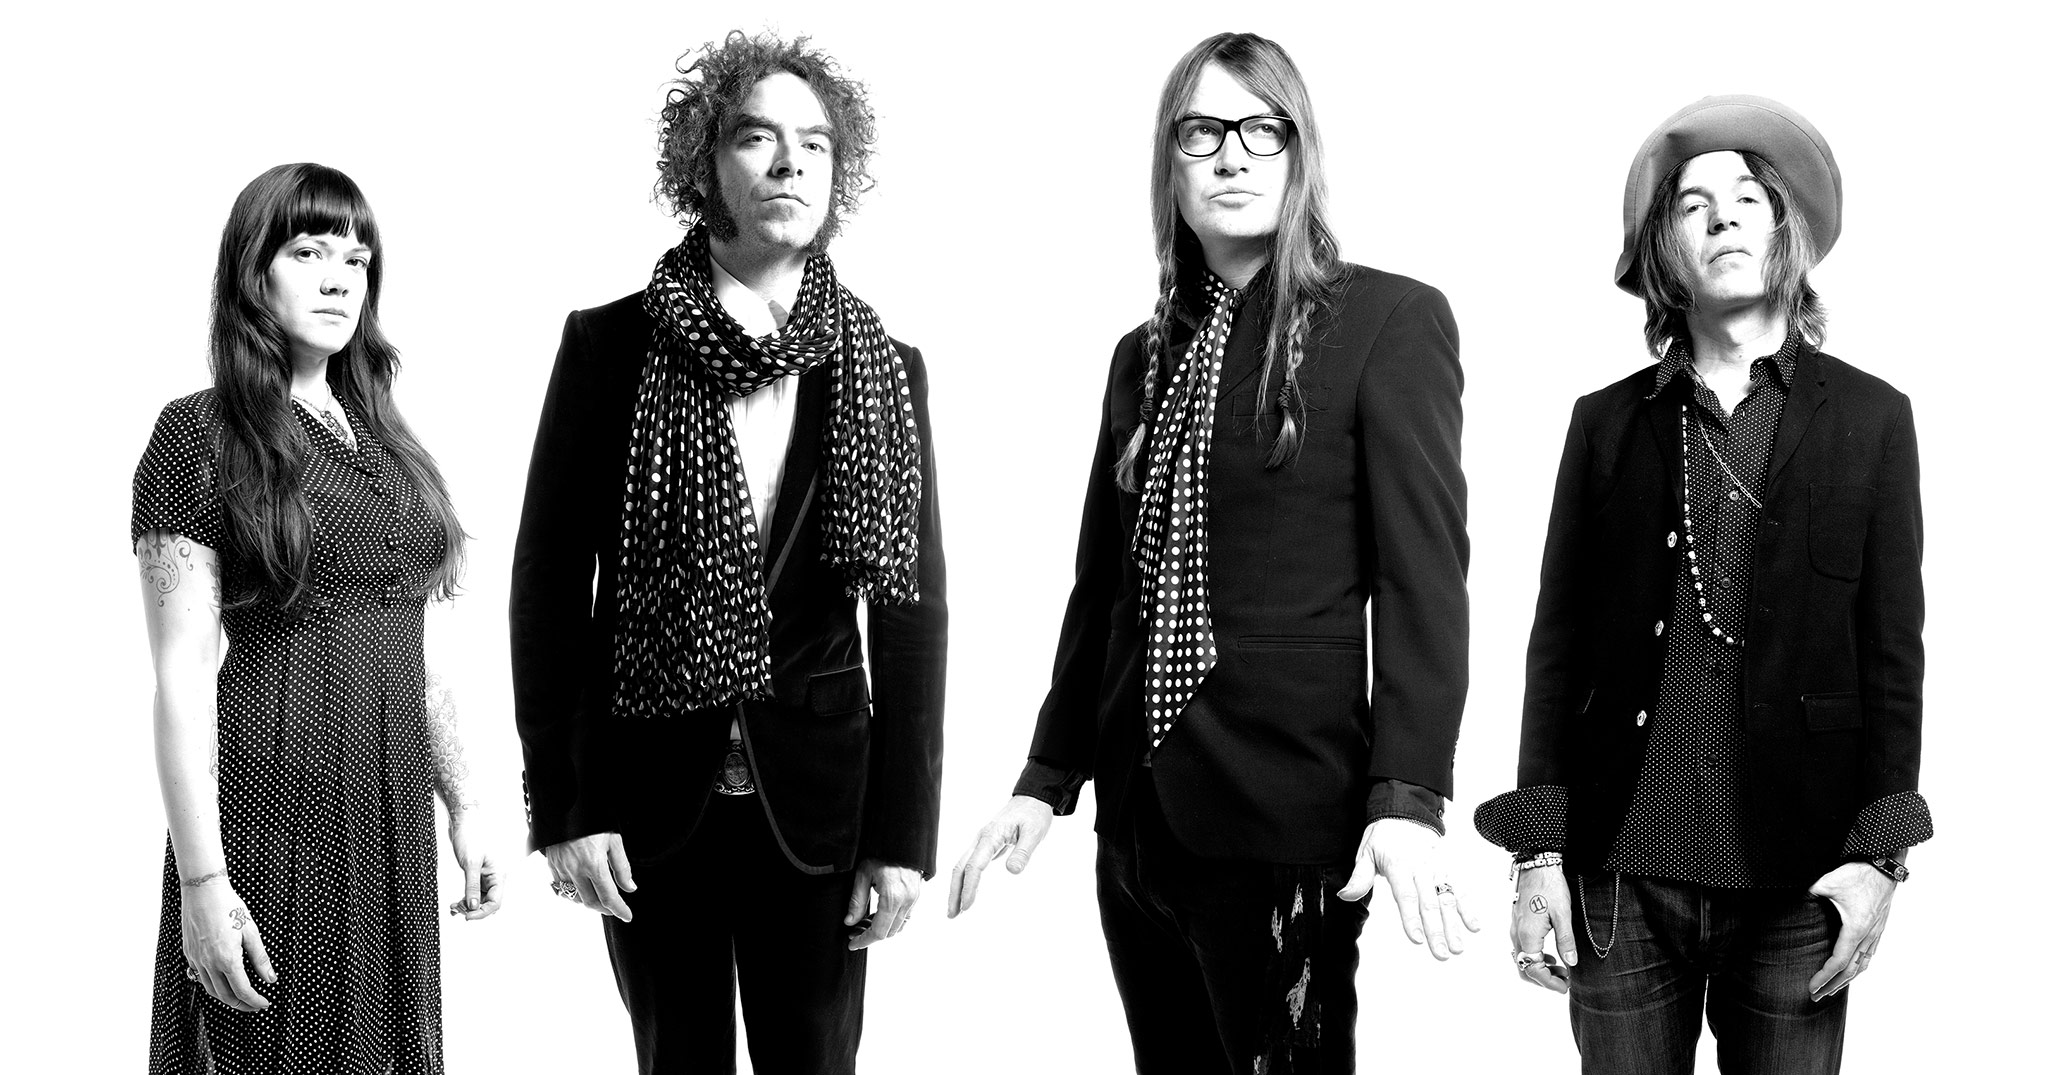 The Dandy Warhols Promo Image